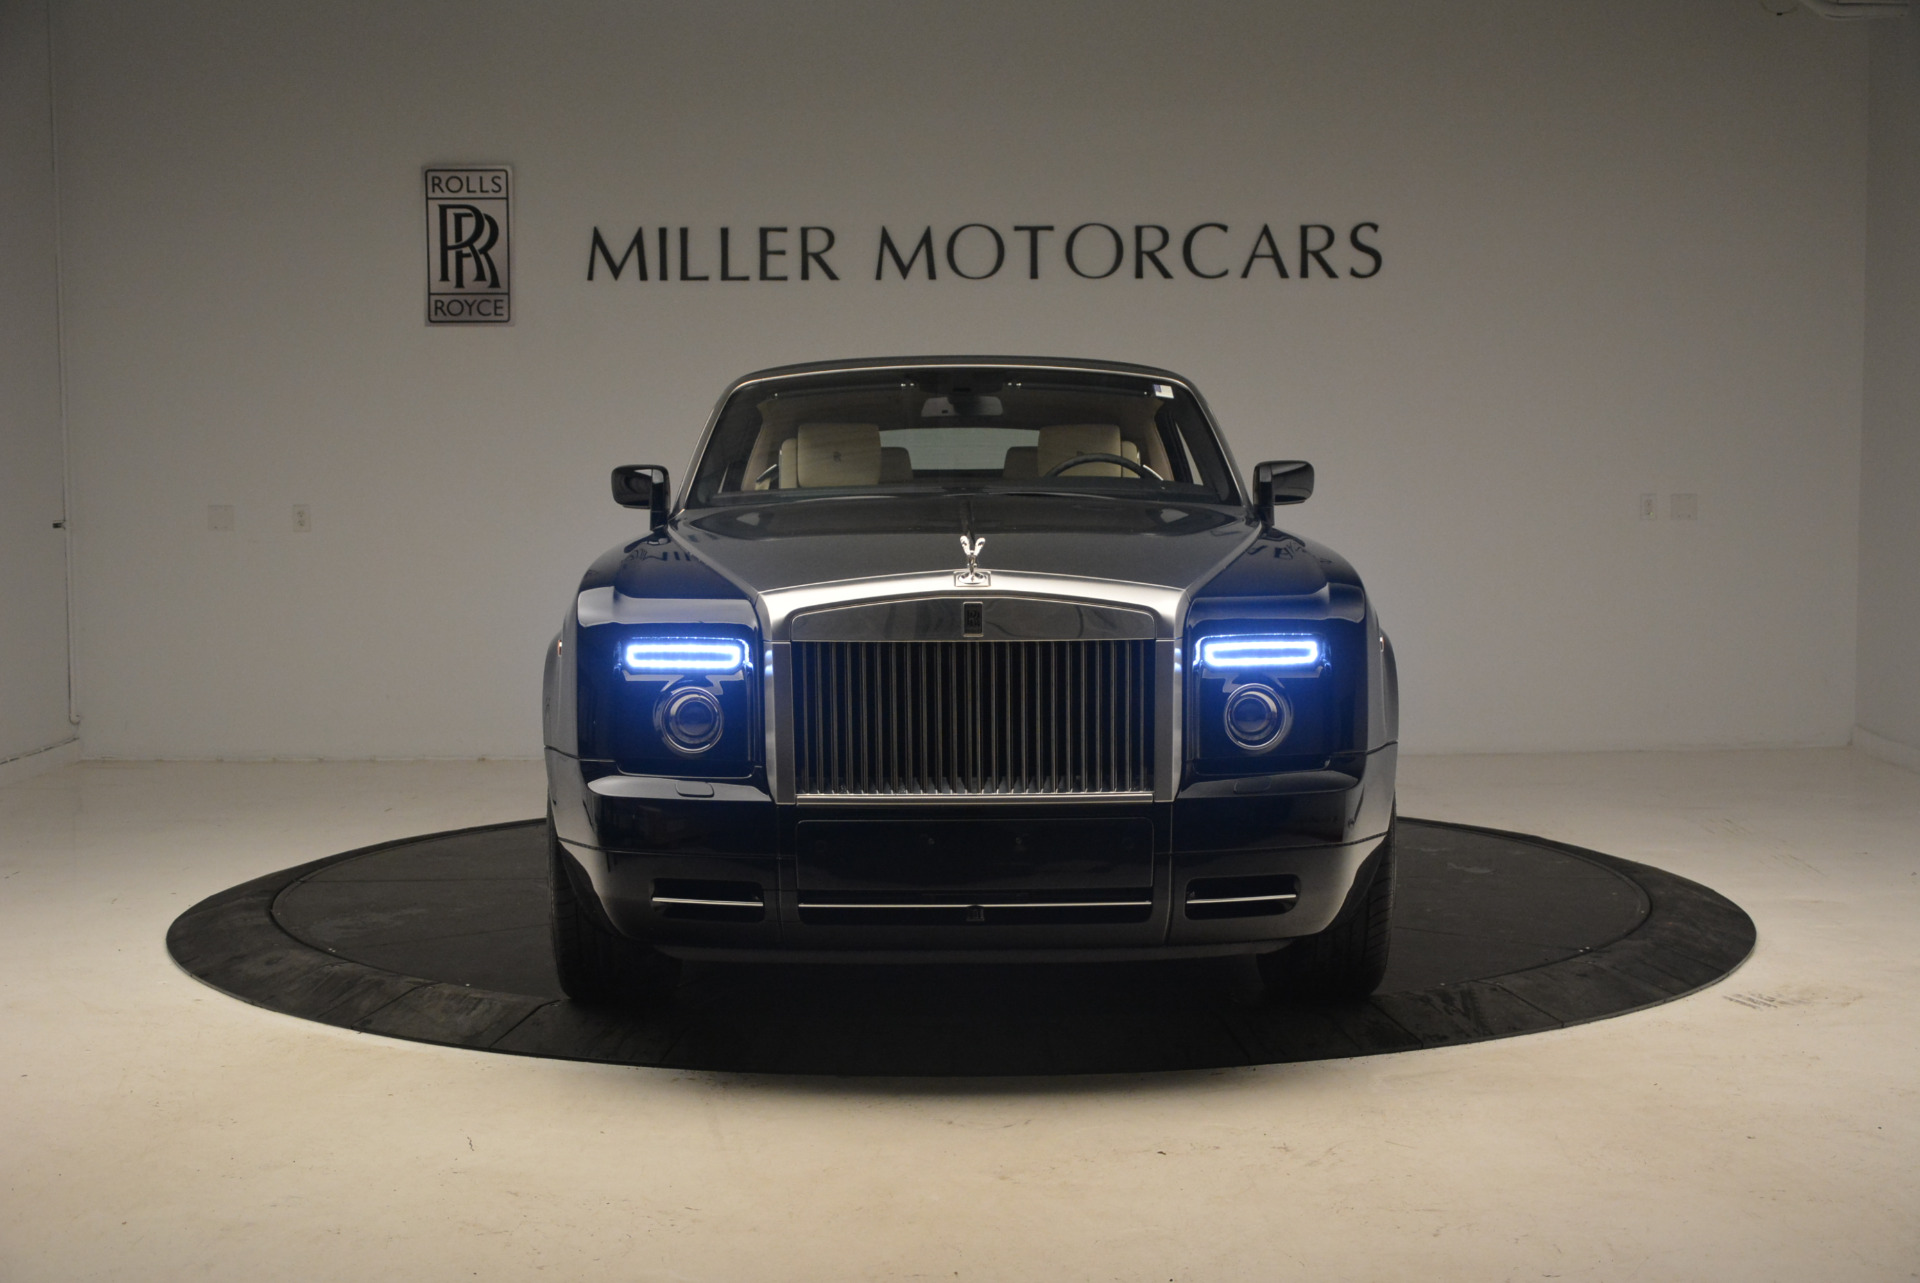 Used 2009 Rolls-Royce Phantom Drophead Coupe  For Sale In Greenwich, CT. Alfa Romeo of Greenwich, 7296 1792_p25